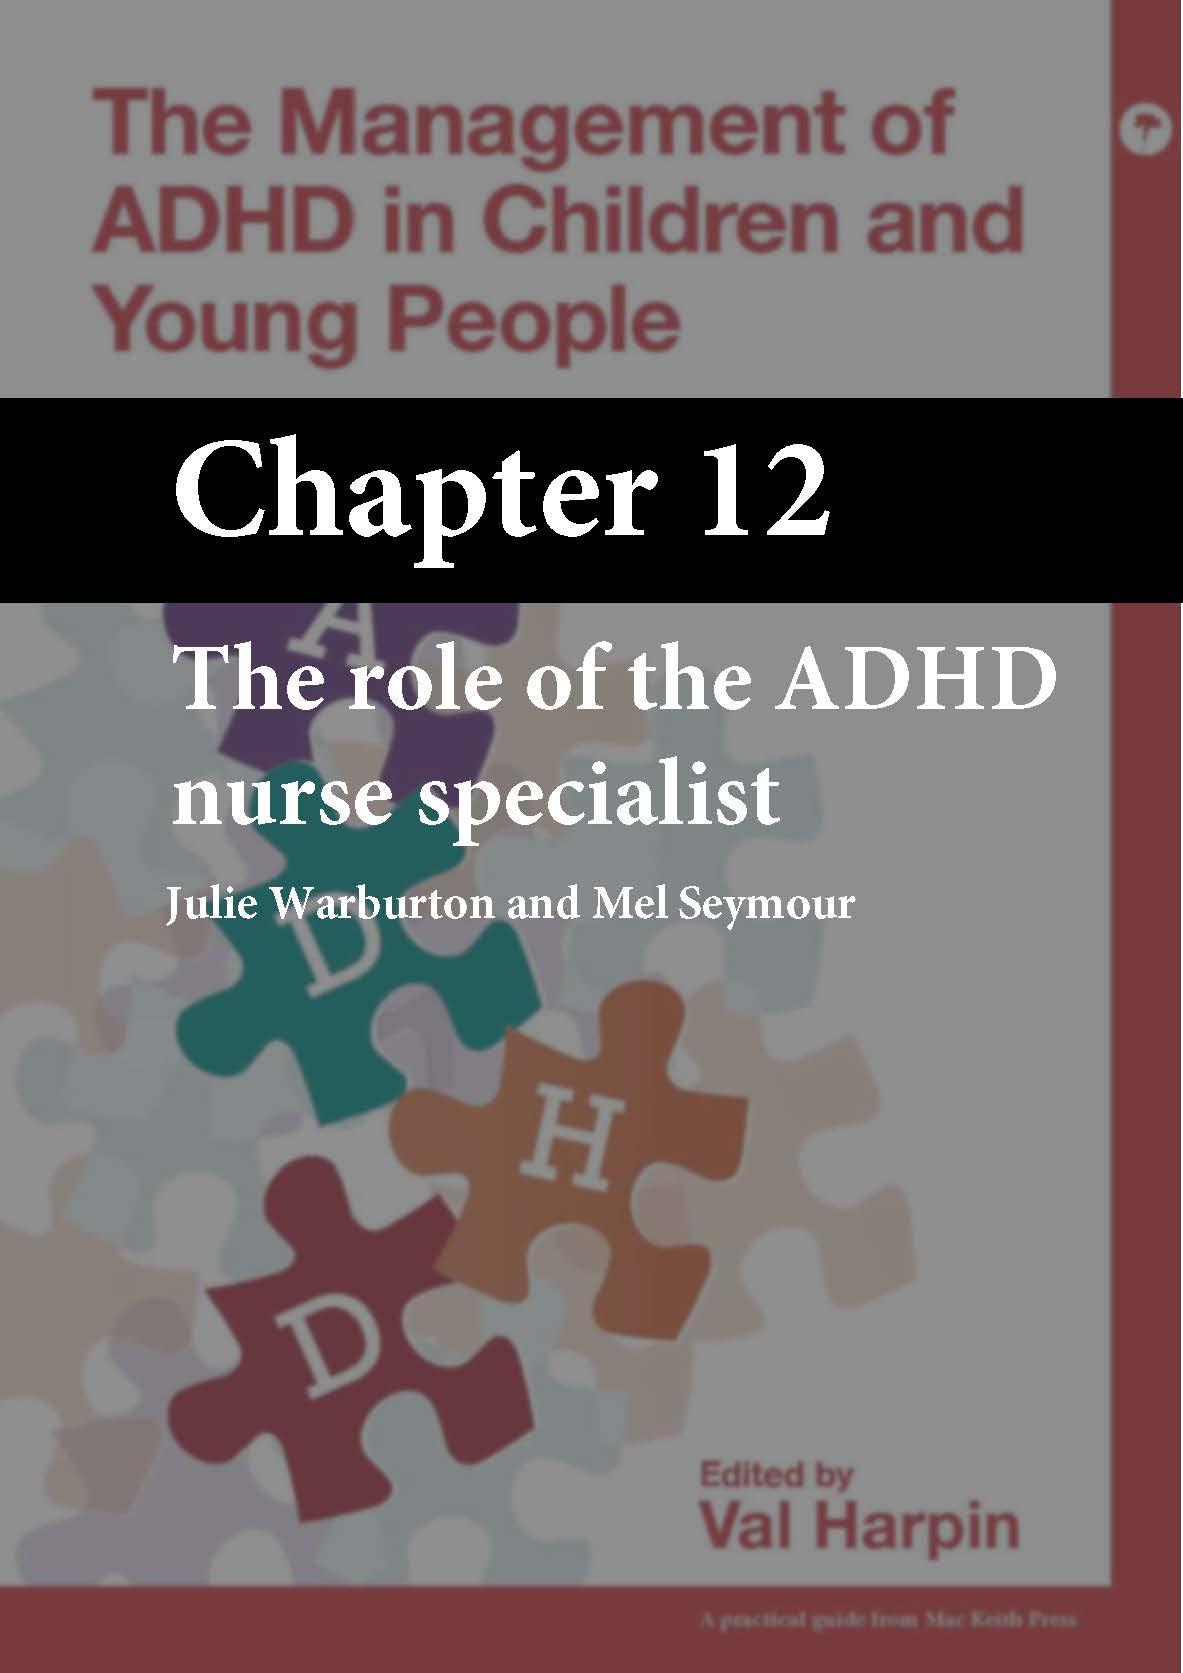 The Management of ADHD in Children and Young People, Harpin, Chapter 12 cover